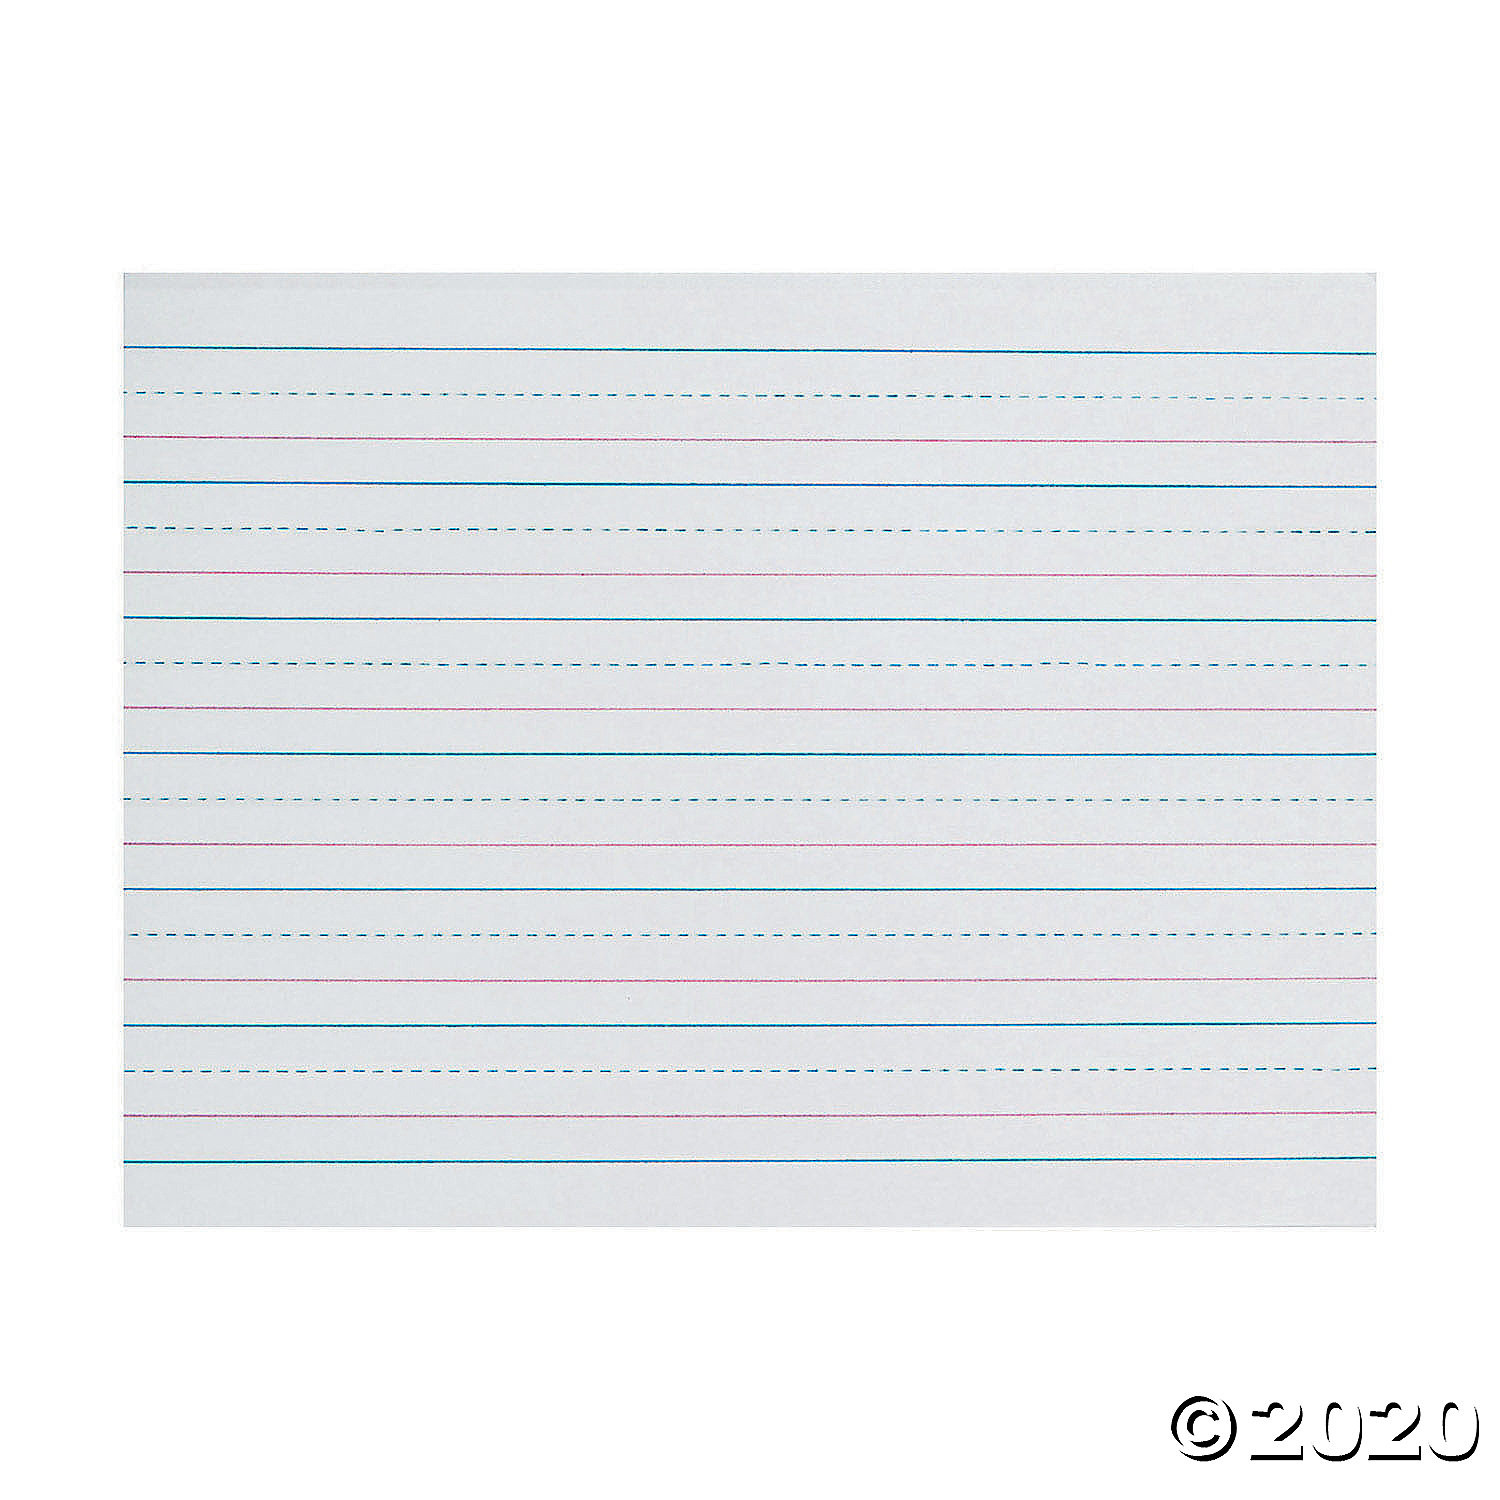 Zaner Bloser Handwriting Worksheets Zaner Bloser™ Sulphite Handwriting Paper Dotted Midline Grade K 3 4 X 3 8 X 3 8 Ruled Long 10 1 2 X 8 500 Sheets Per Pack 2 Packs